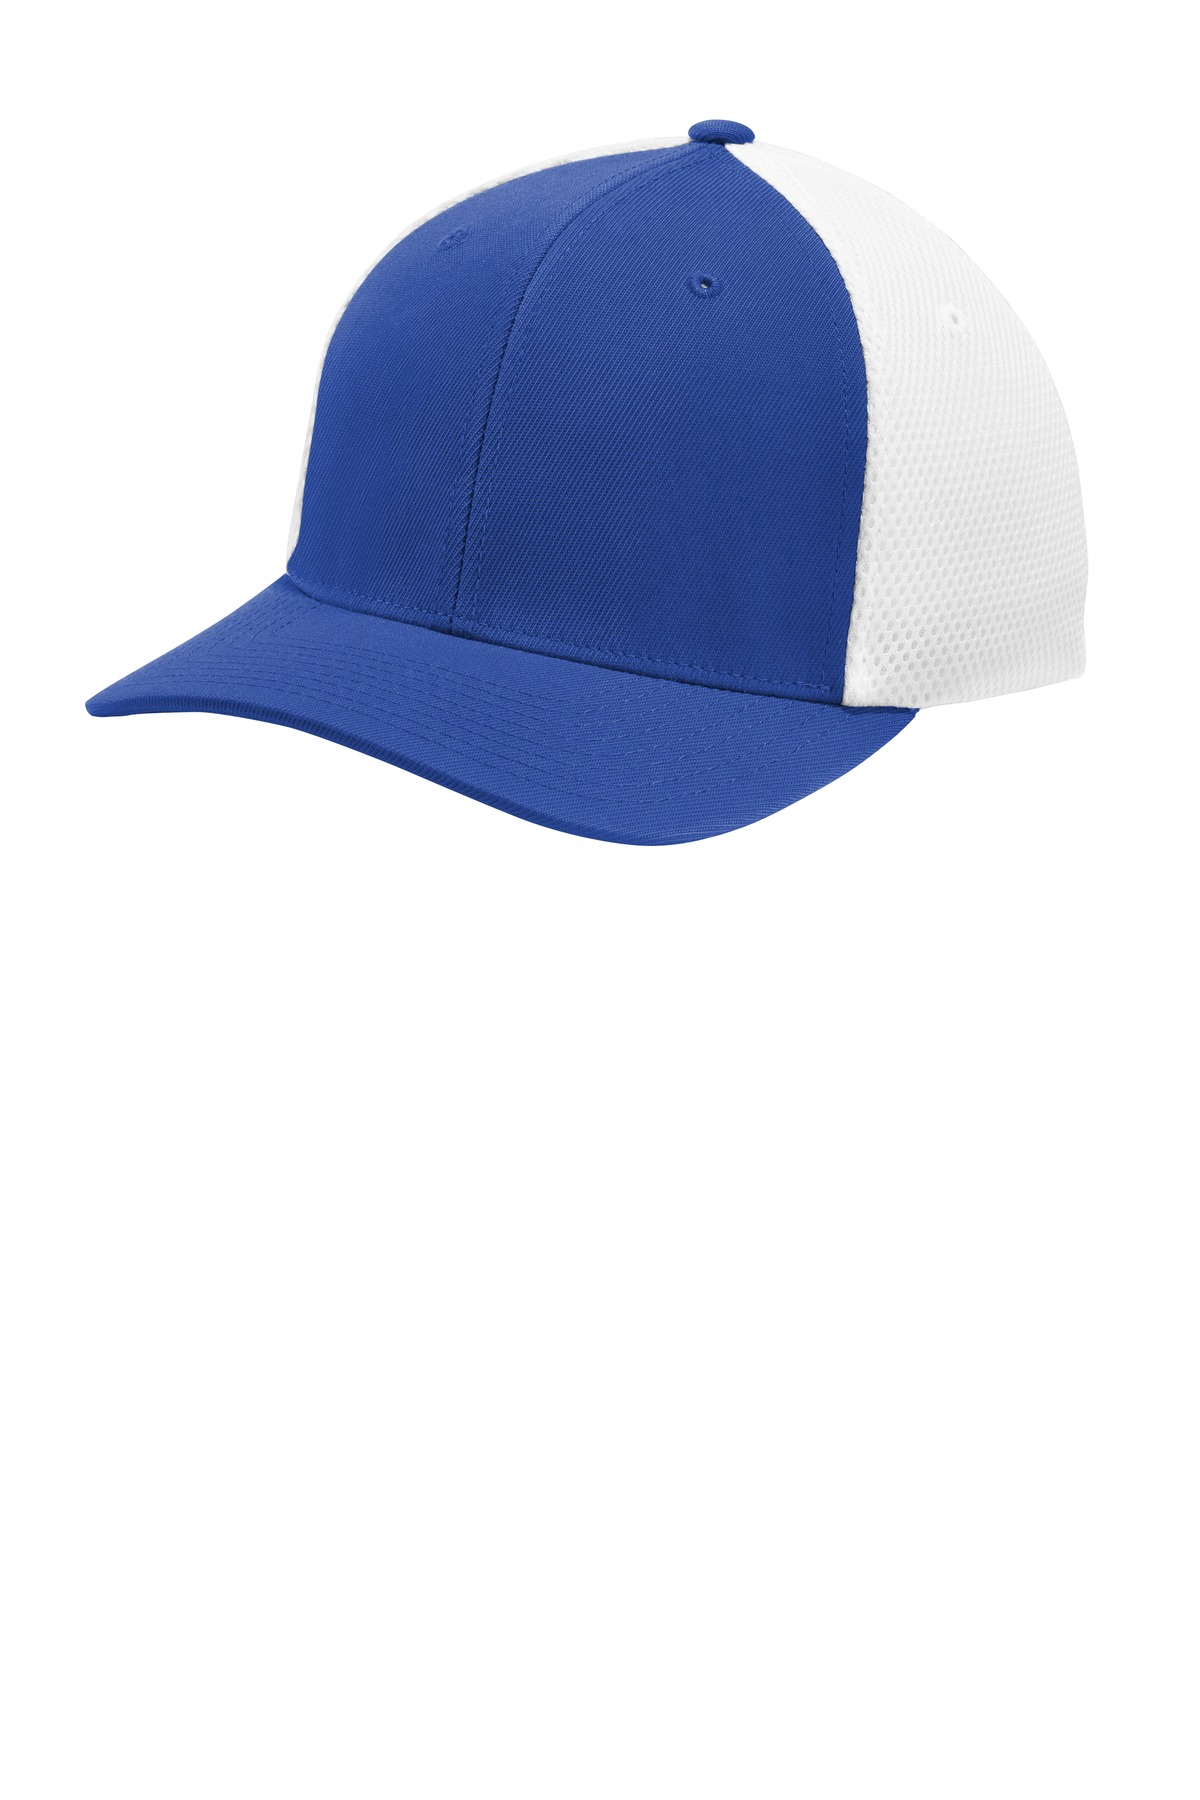 Sport-Tek  ®  Flexfit  ®  Air Mesh Back Cap. STC40 - True Royal/ White